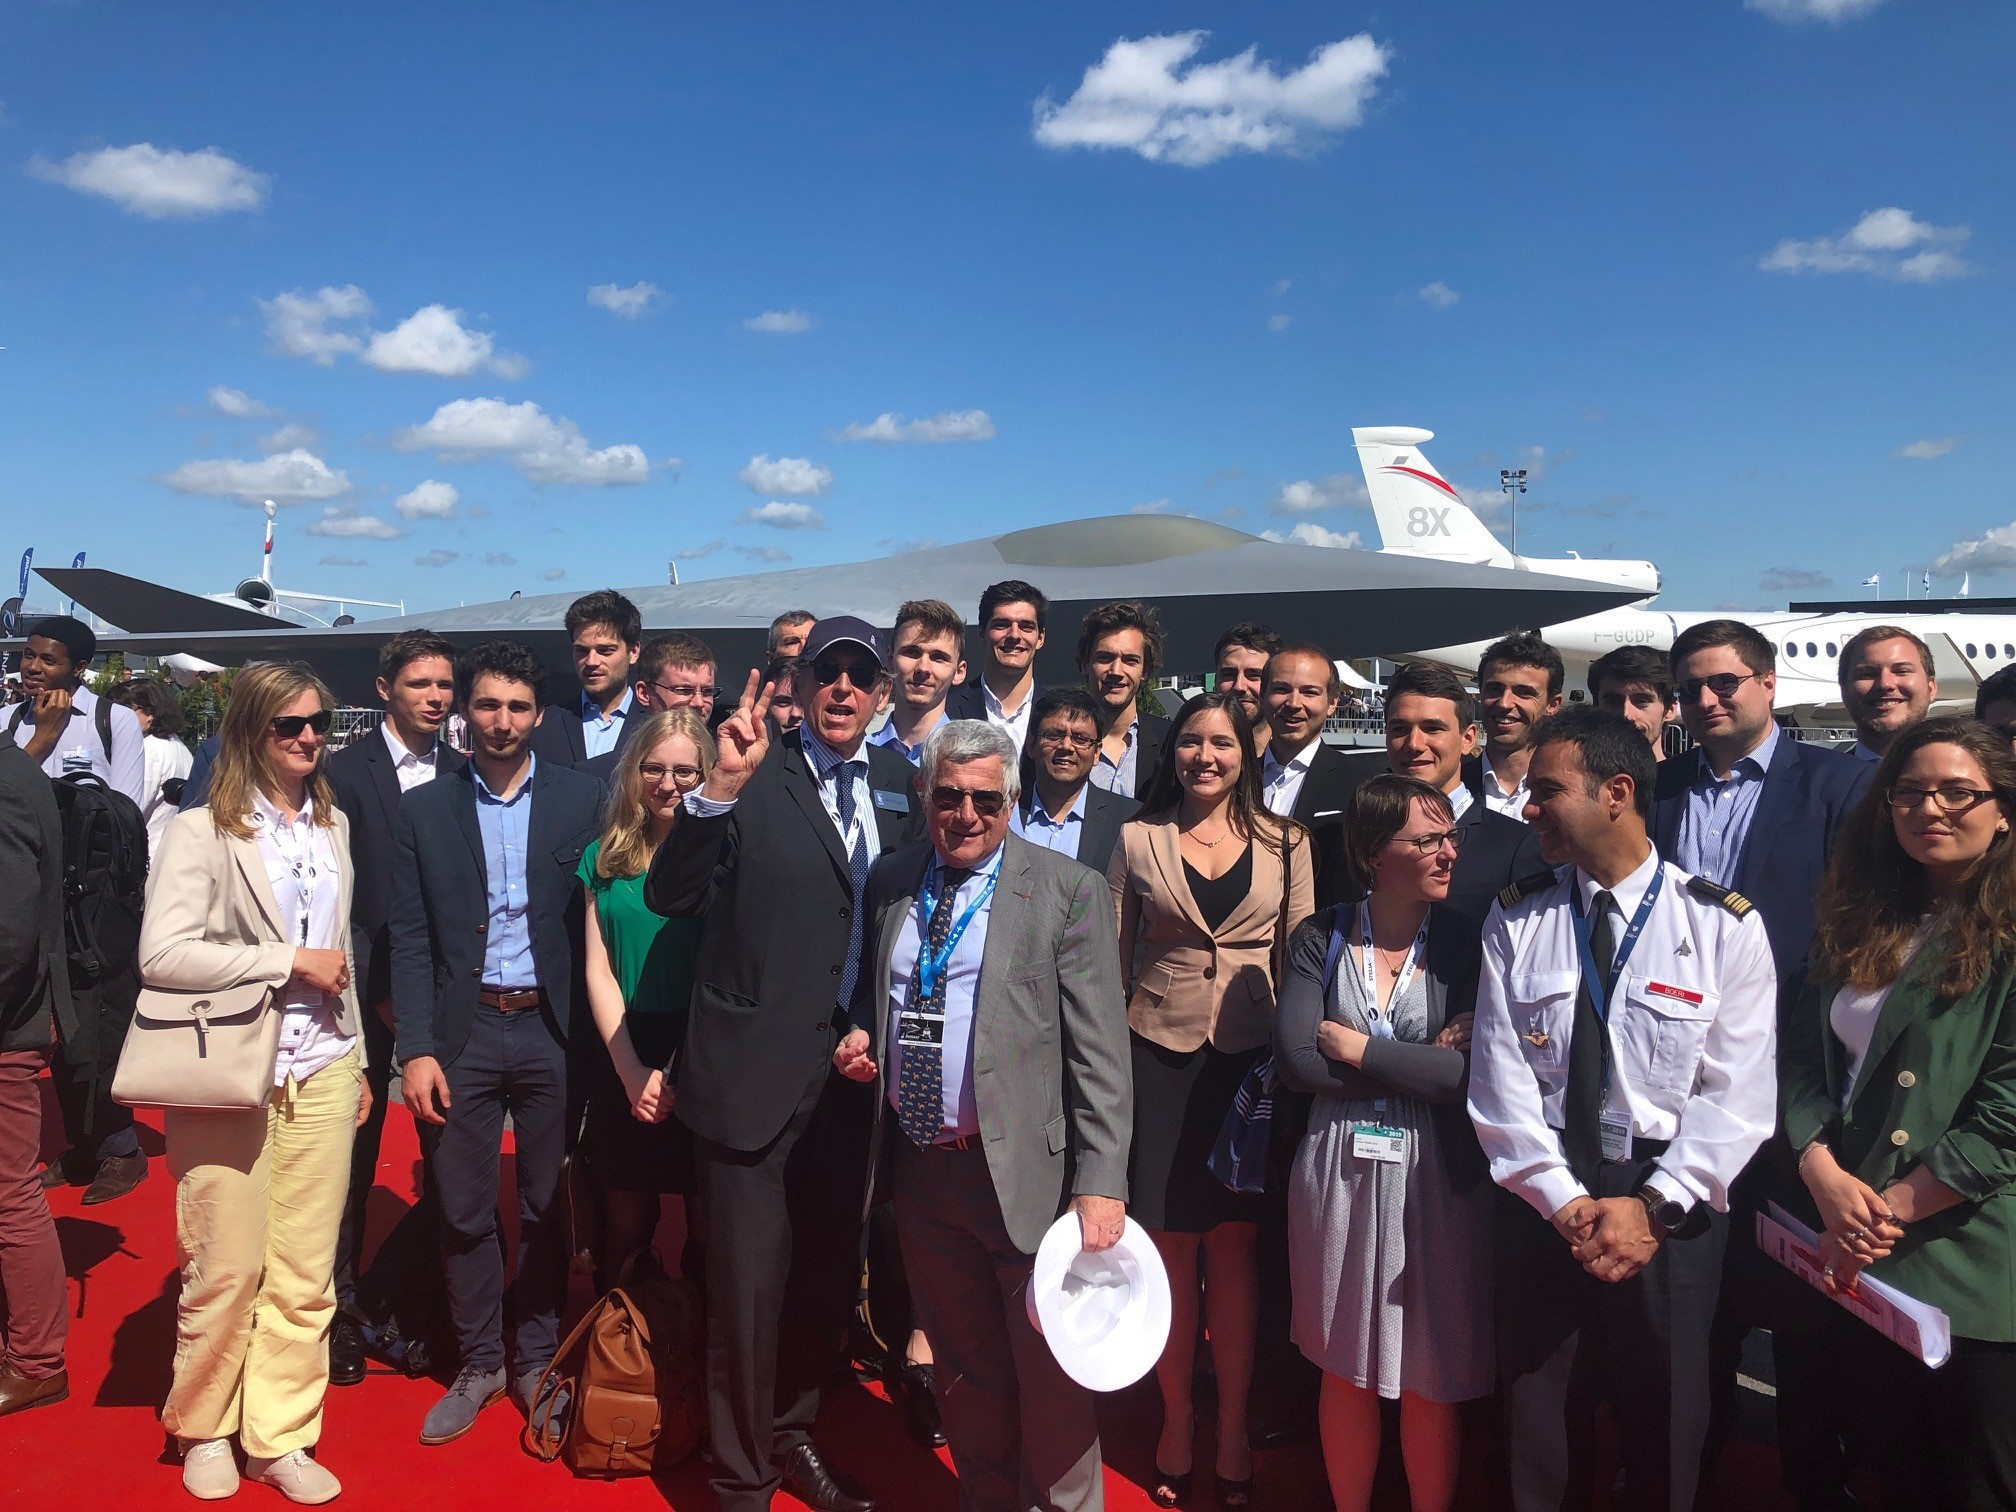 Pre-Student Awards Seminar at Le Bourget Paris Air Show – Jun.19